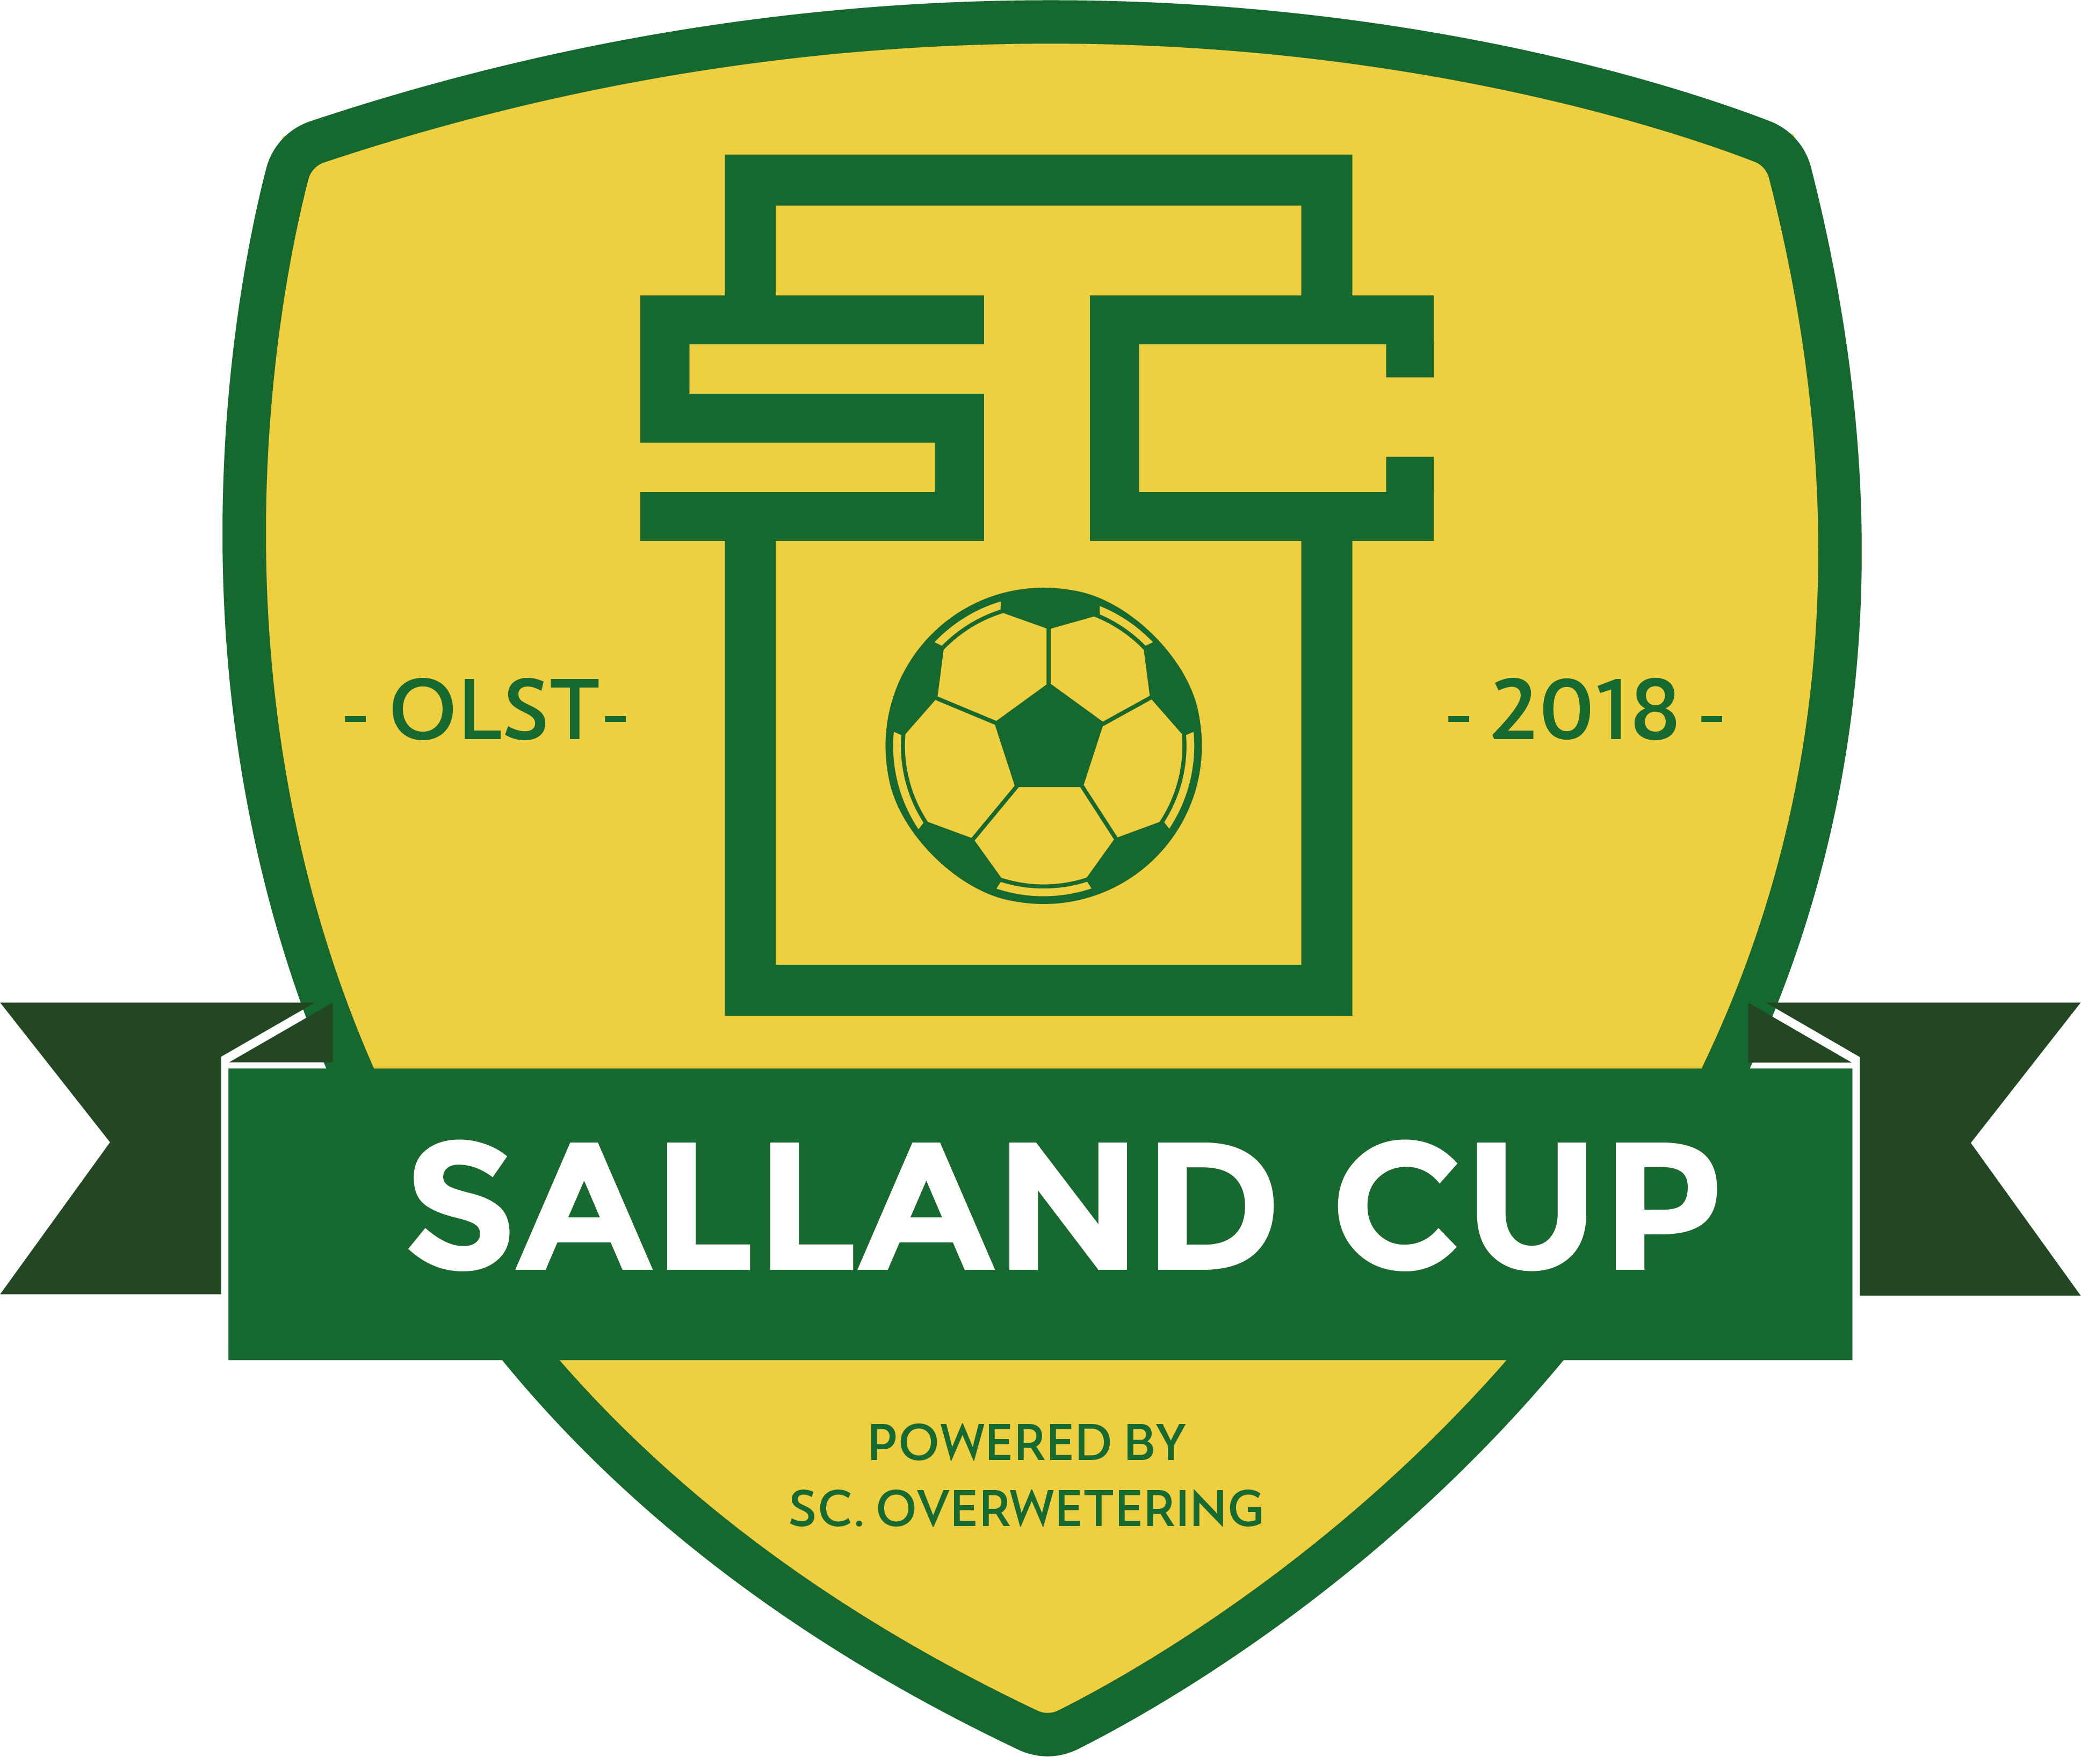 Salland Cup